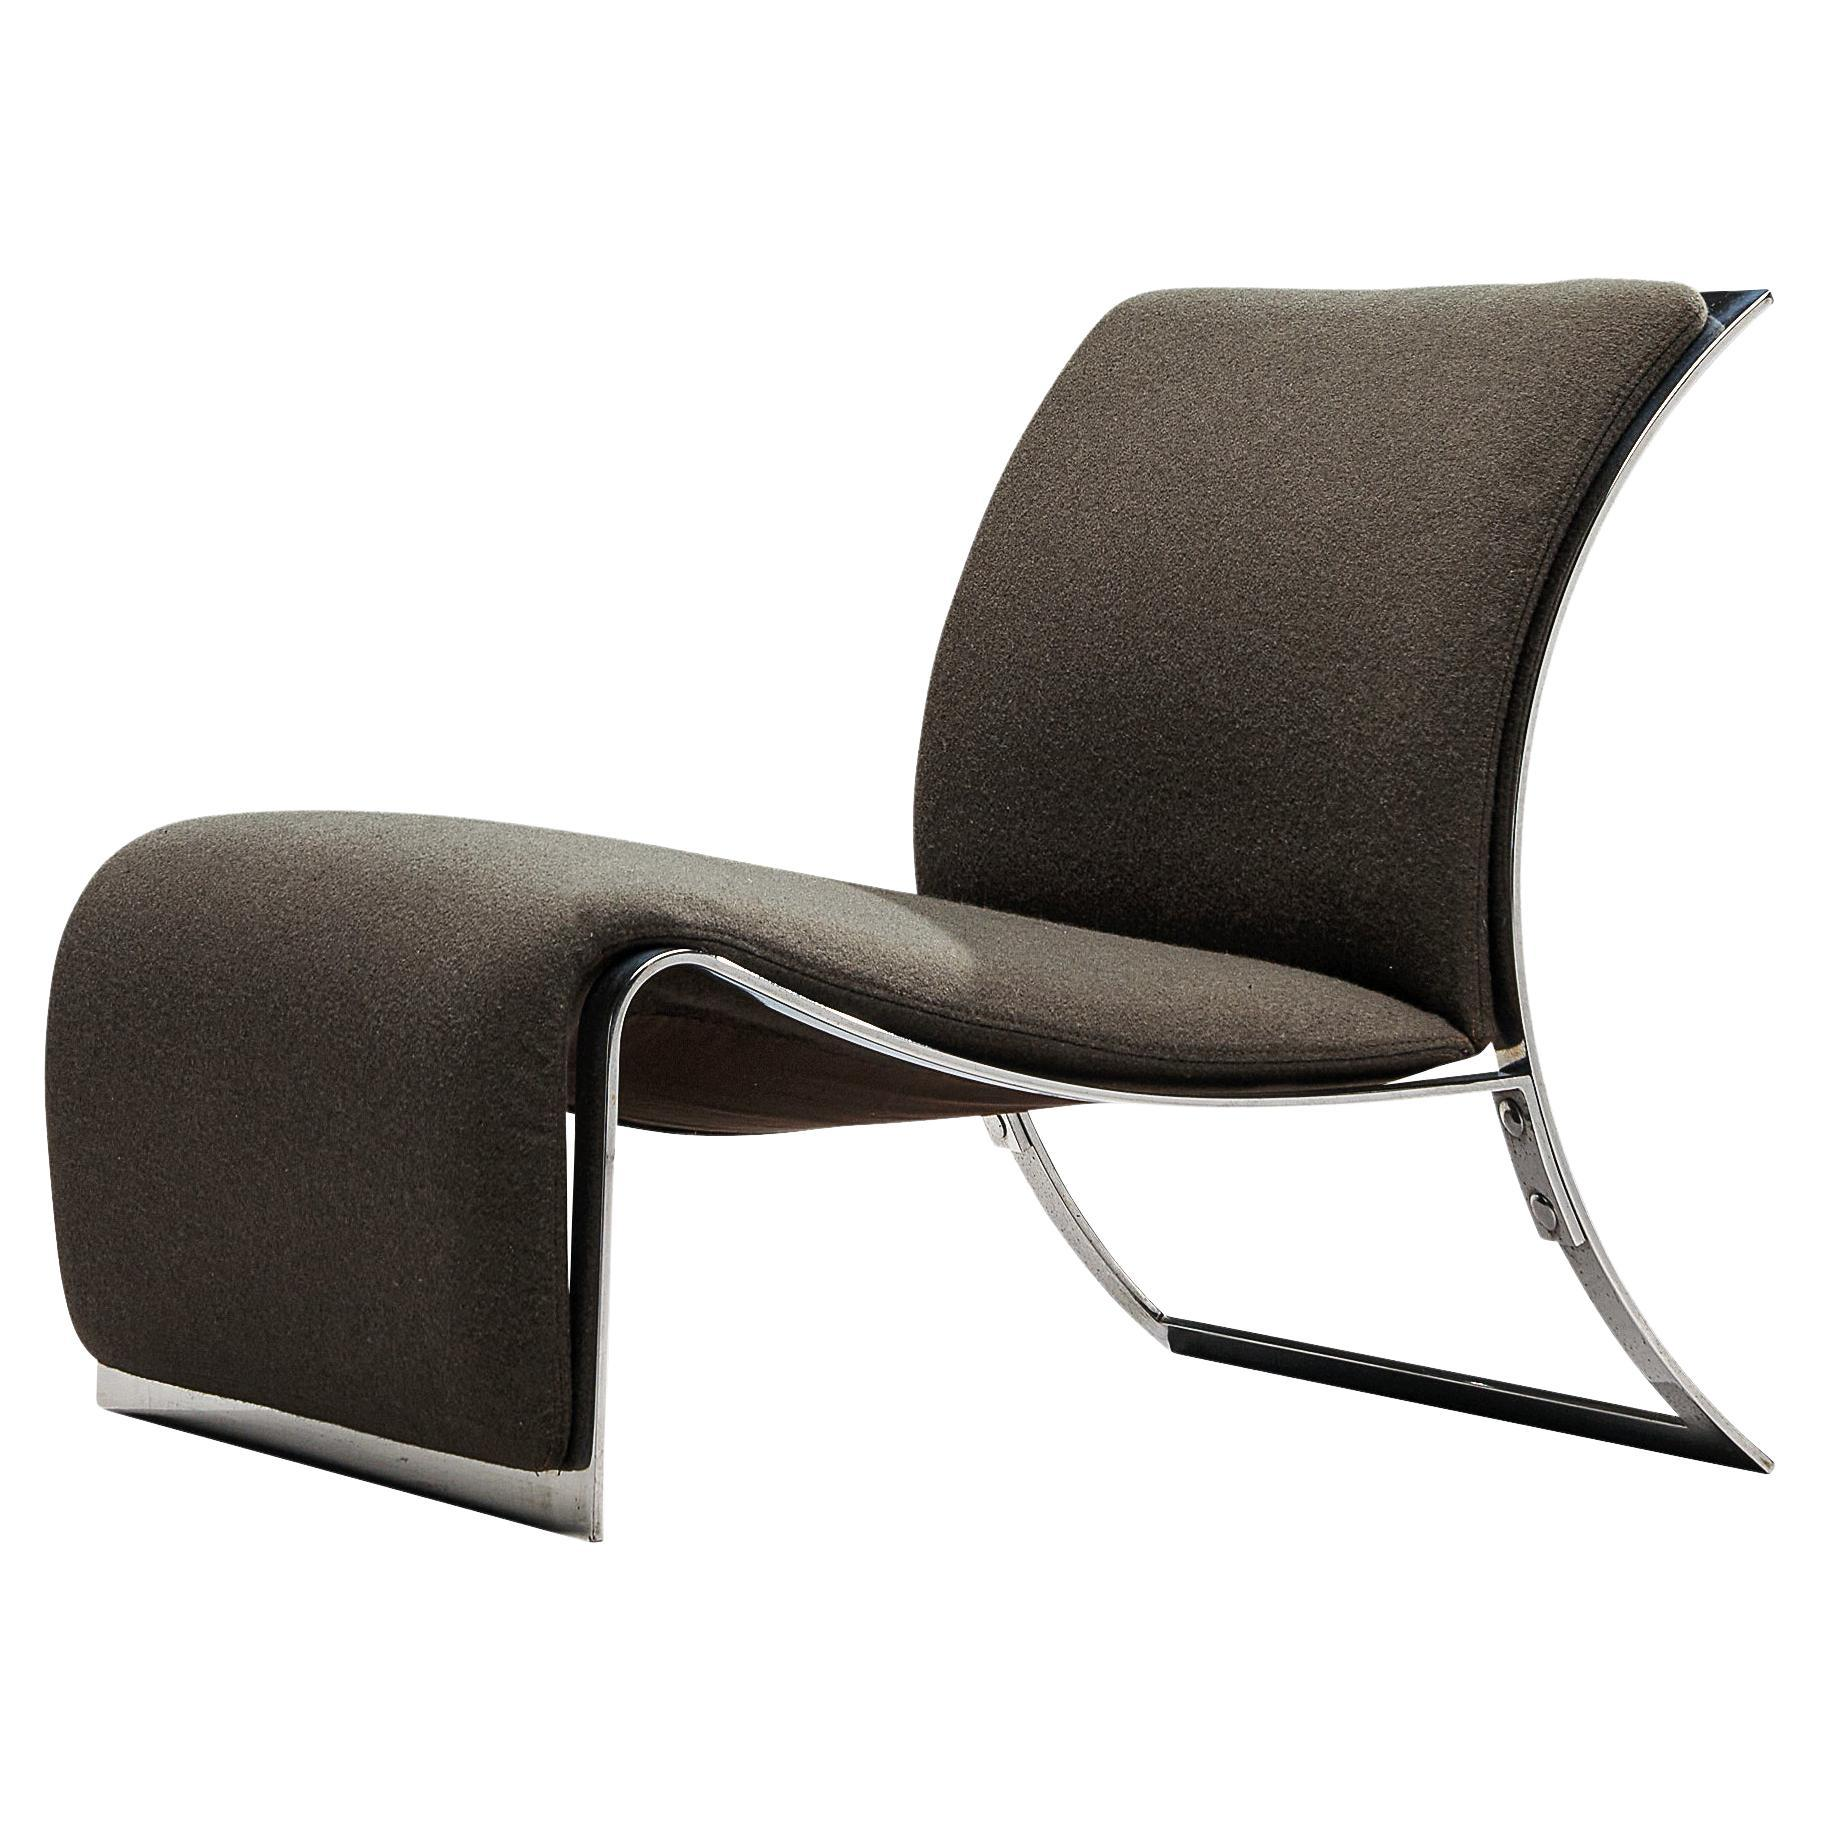 Vittorio Introini for Saporiti Lounge Chair with Frame in Chrome